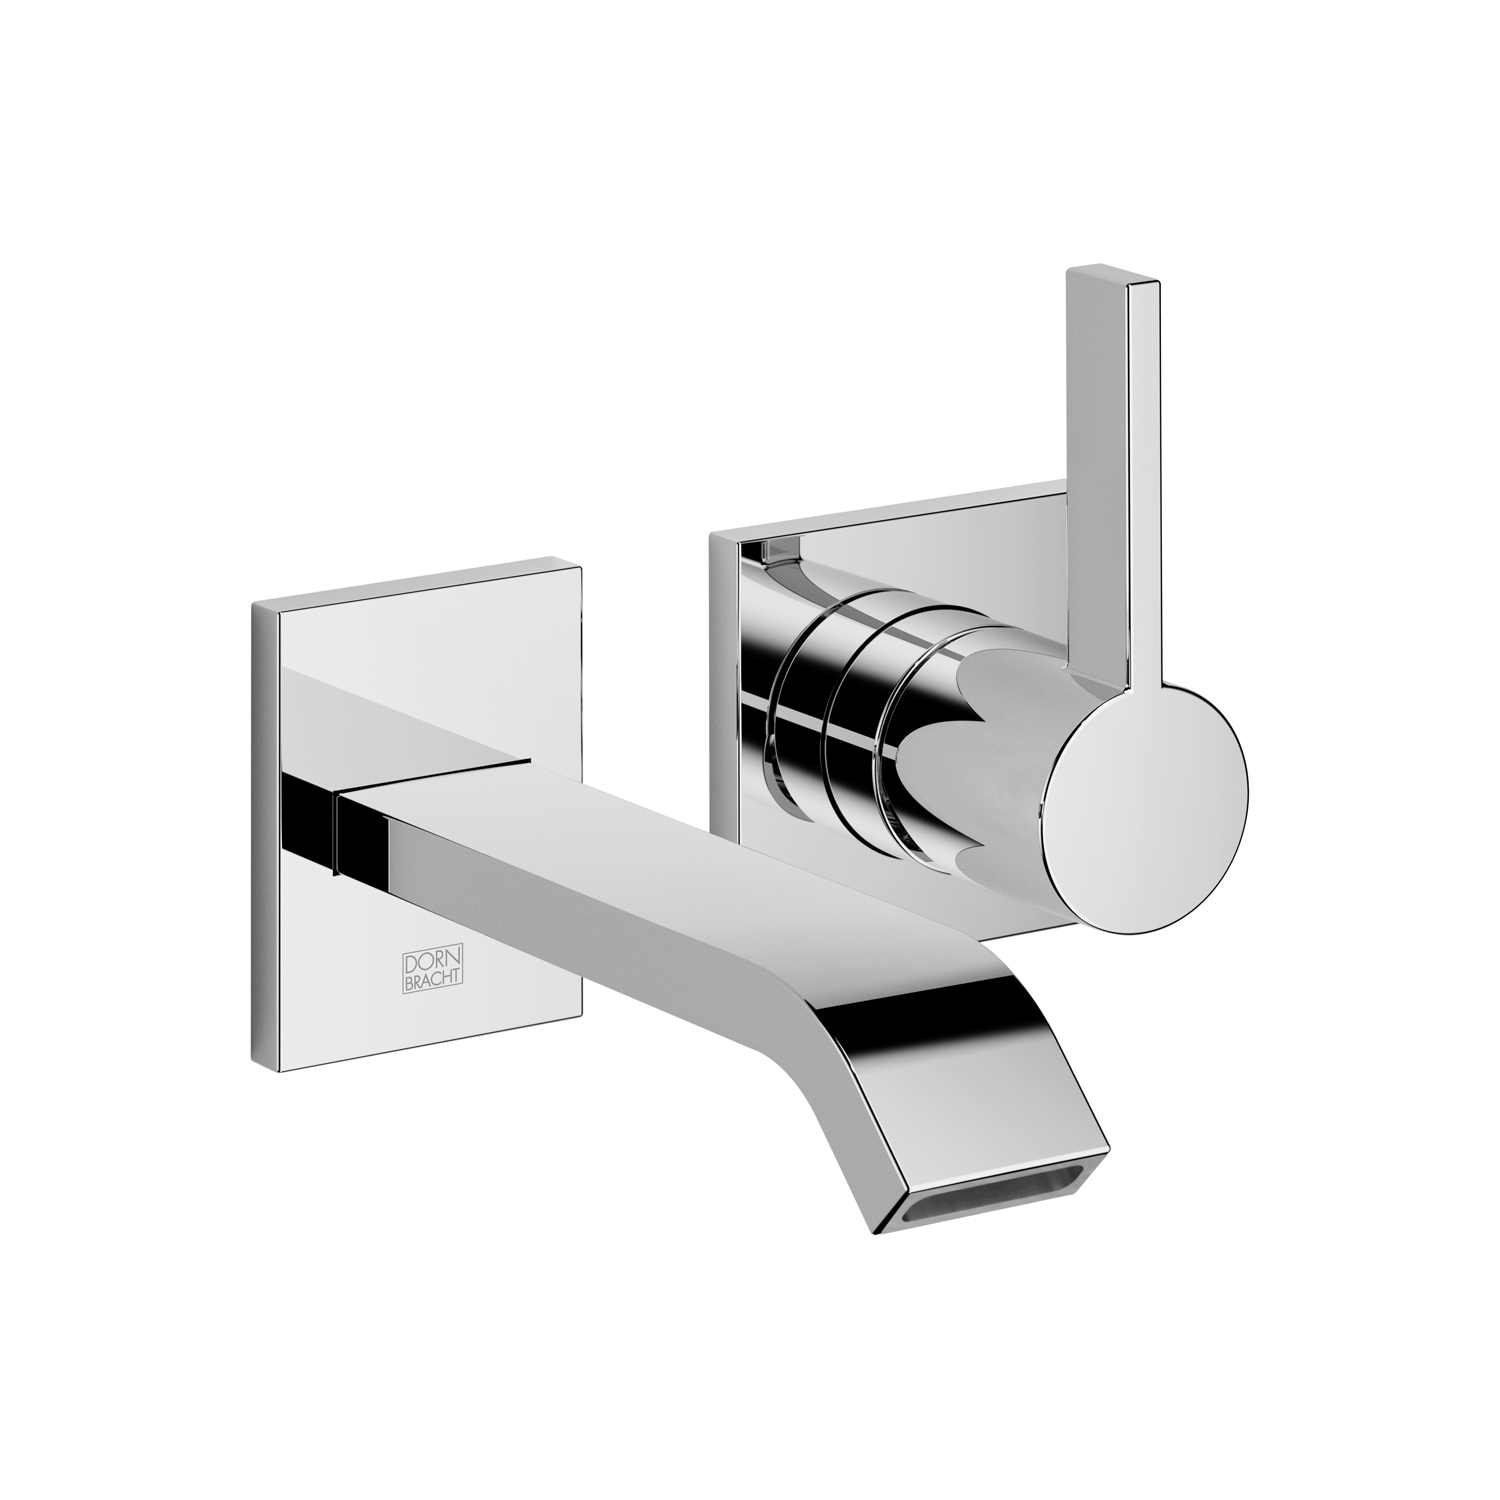 Dornbracht 36810670-000010 IMO Wall-Mounted Single-Lever Mixer without Drain - Polished Chrome